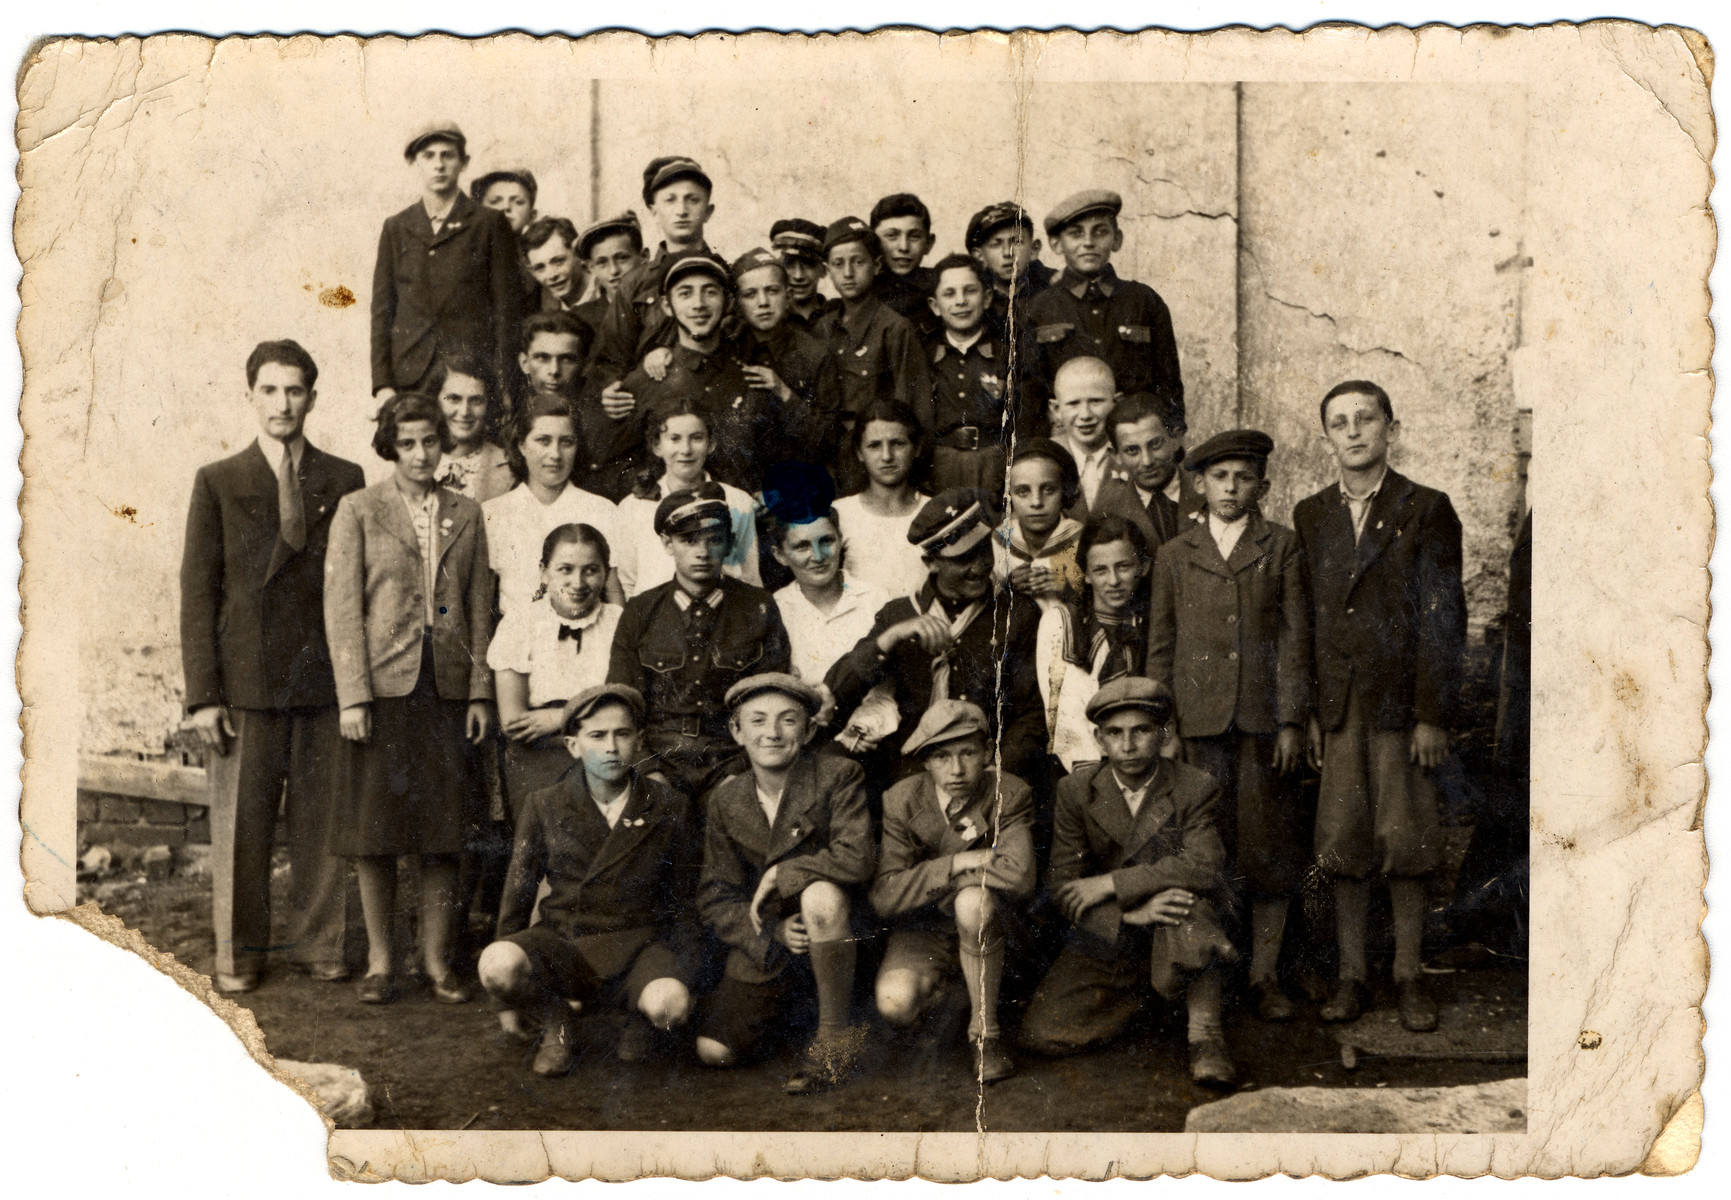 Group portrait of Jewish youth, members of the Betar movement, in Krosno, Poland.